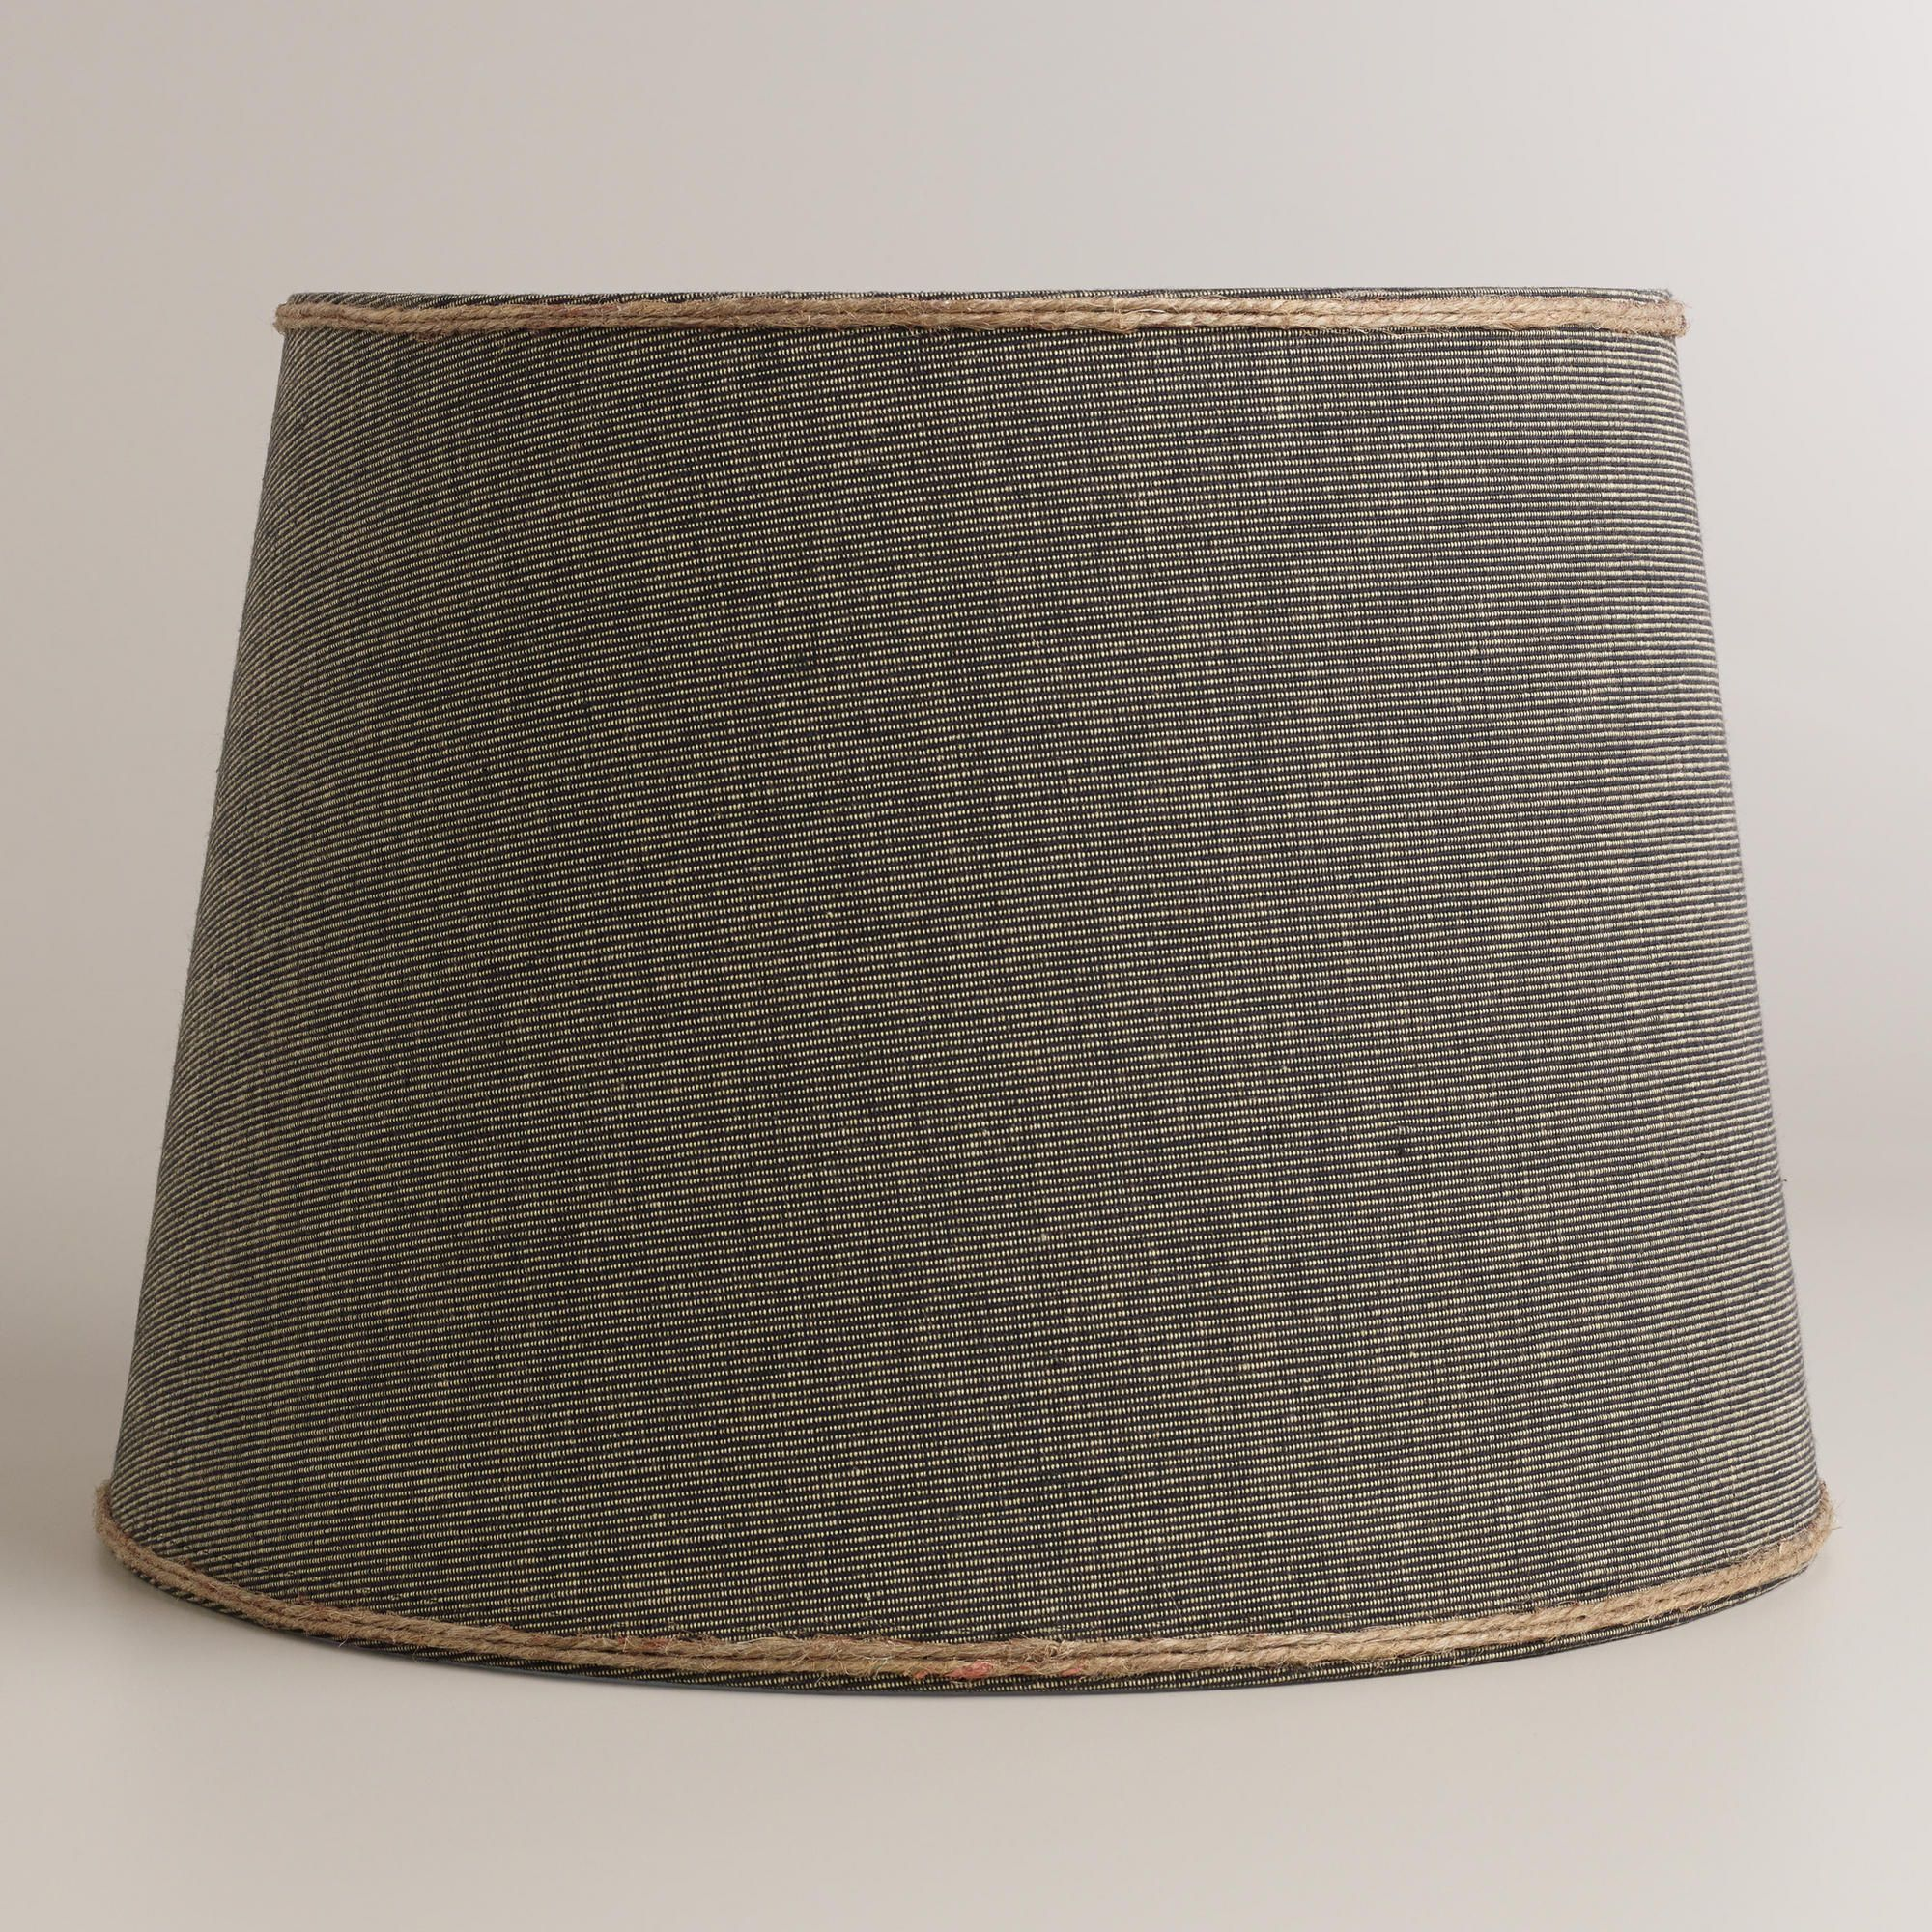 Navy with jute trim table lamp shade world market 2699 house navy with jute trim table lamp shade world market 2699 geotapseo Image collections